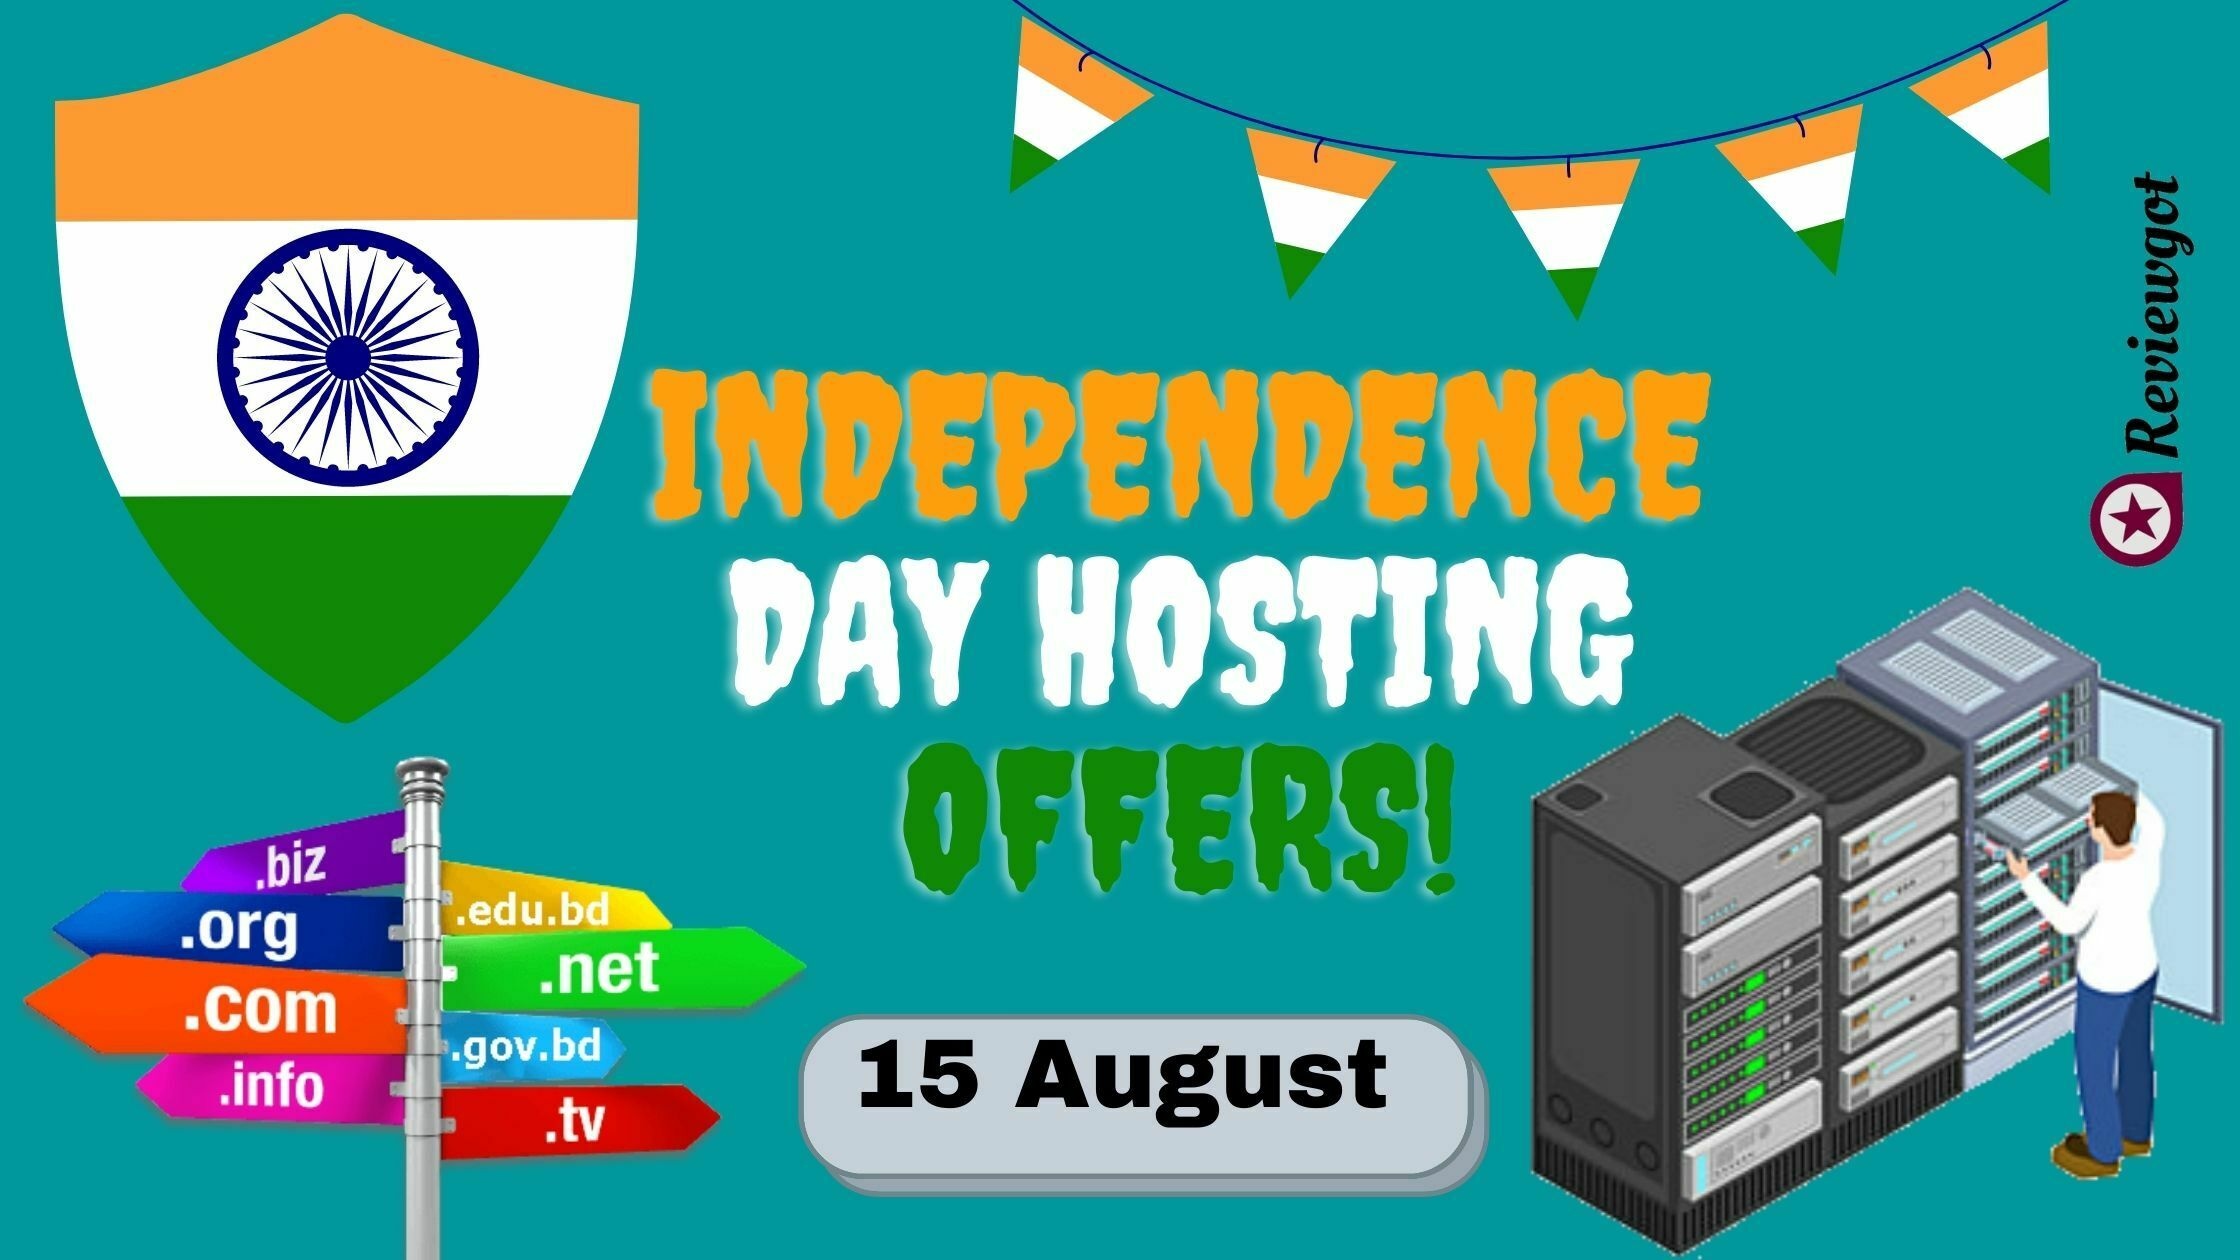 Independence Day Hosting Offers